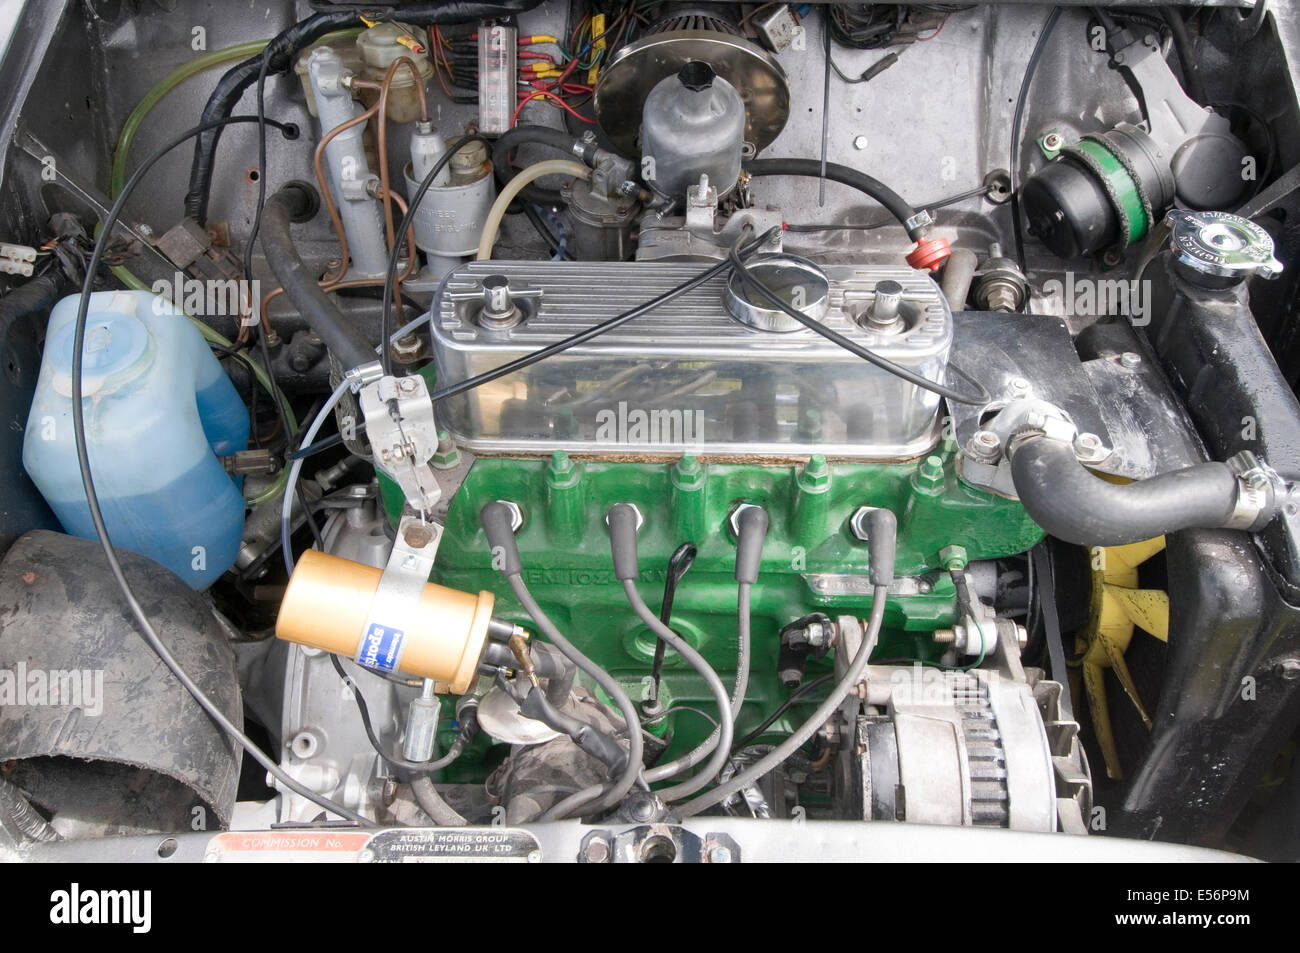 mini engine car cars internal combustion a series bmc leyland british classic motor maintenance simple ignition - Stock Image